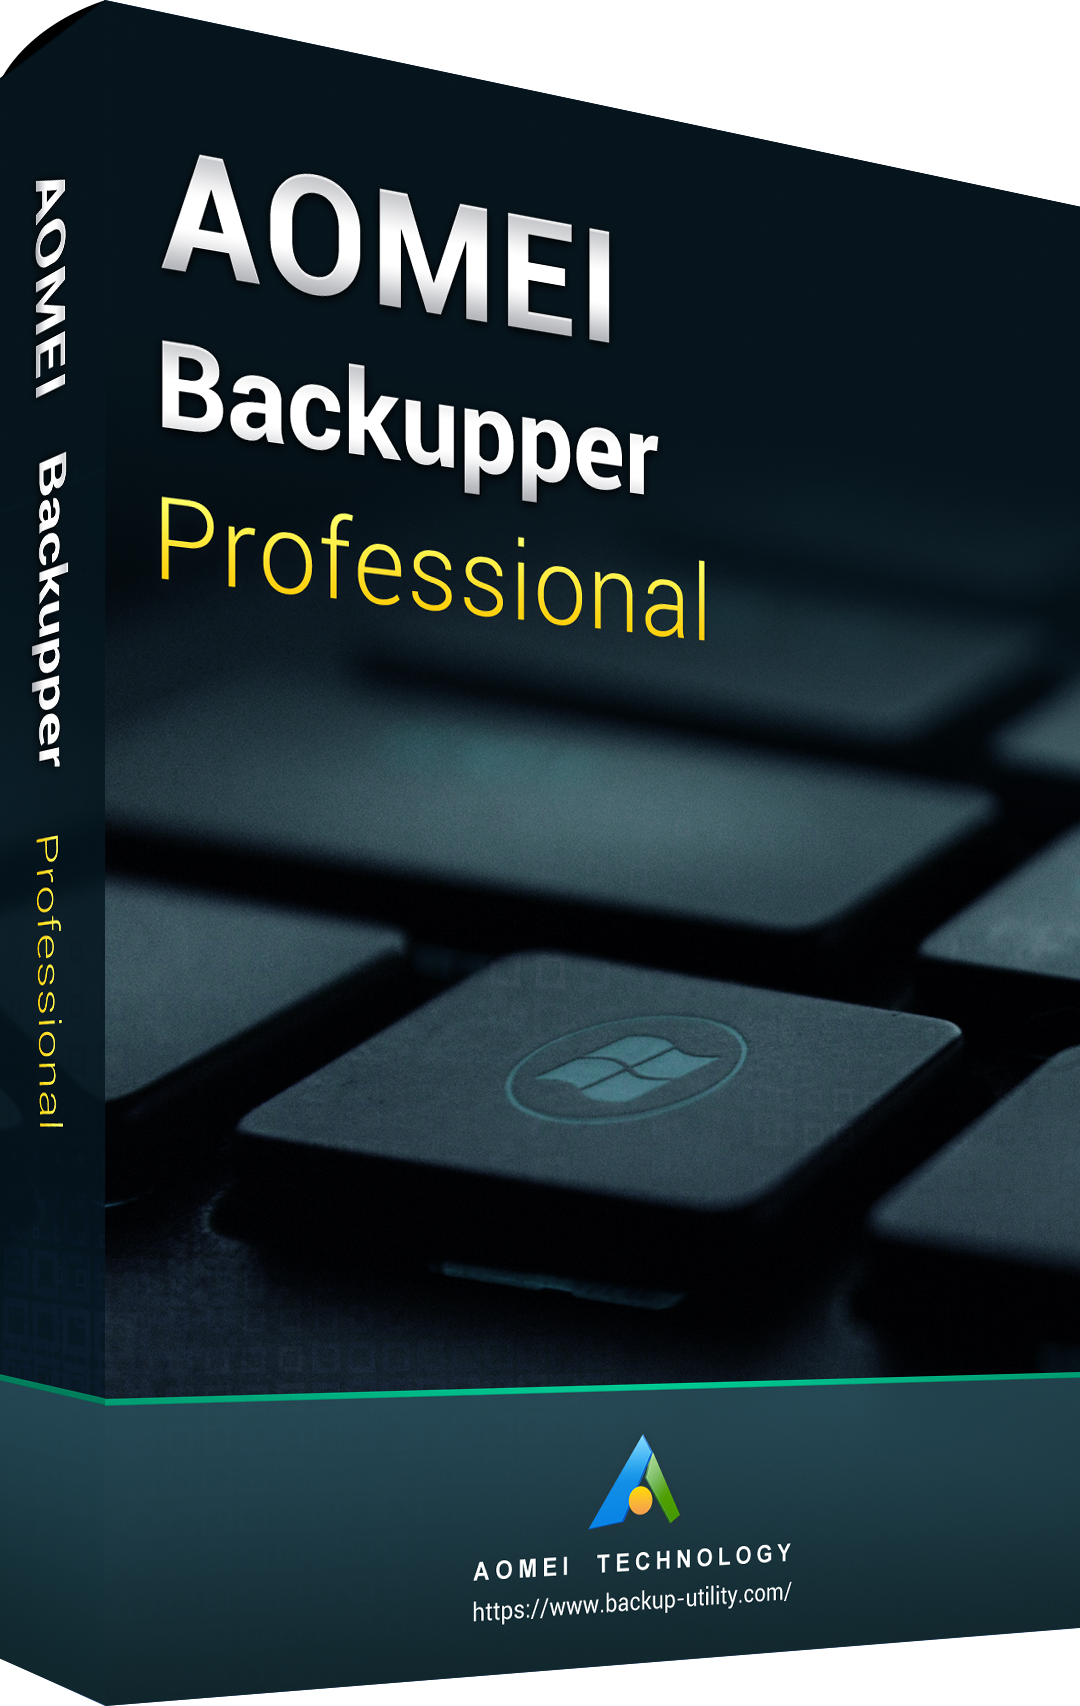 "Download Link: <a href=""http://www2.aomeisoftware.com/download/adb/full/AOMEIBackupperSetup.exe"">http://www2.aomeisoftware.com/download/adb/full/AOMEIBackupperSetup.exe</a><br>It's in stock now, welcome to order in SCDKey. One license code could reigster on 2 PCs."